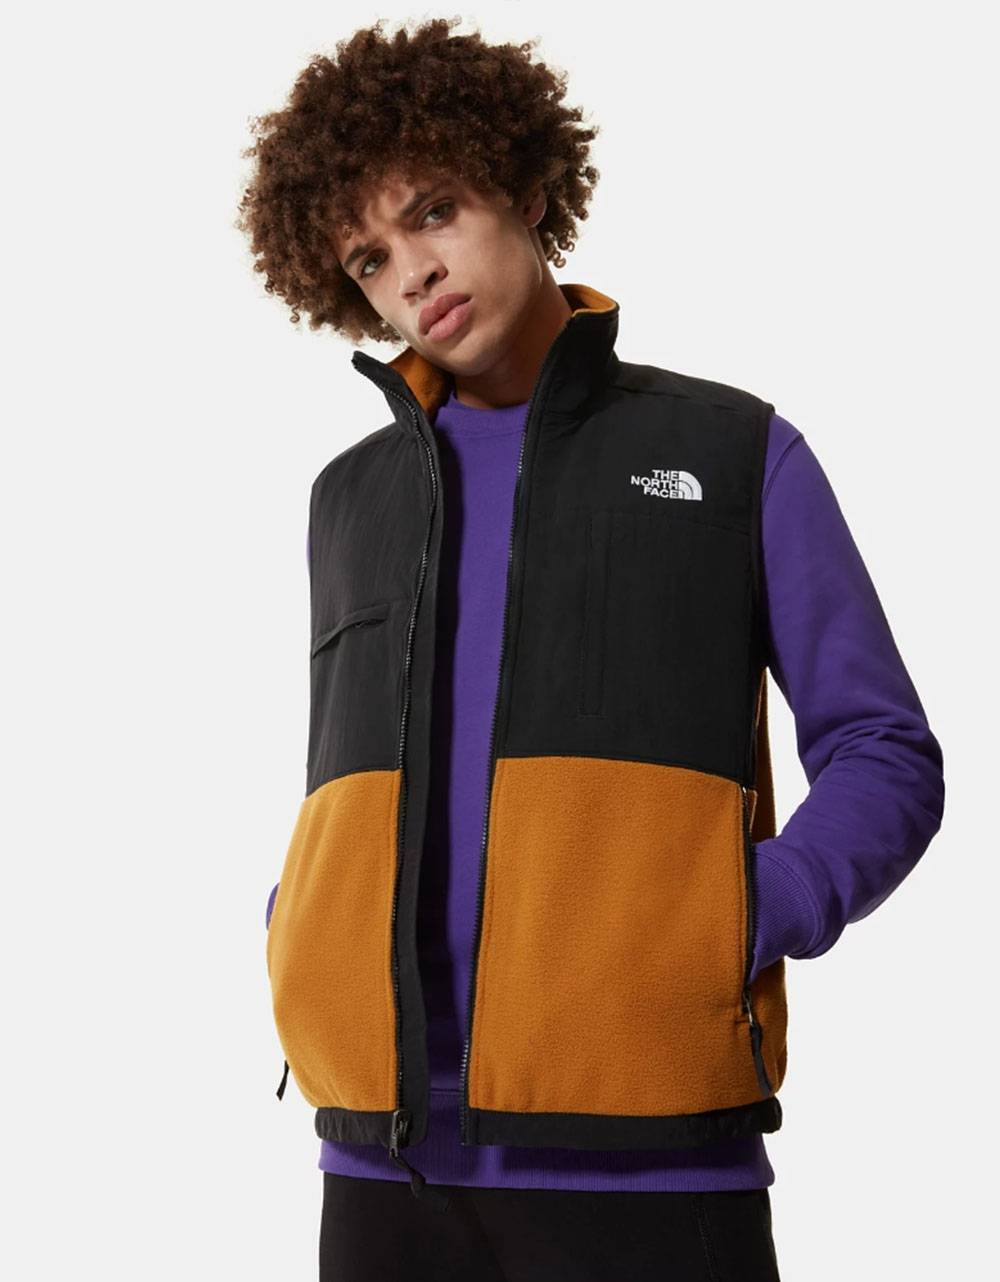 The North Face denali vest jacket - timber tan THE NORTH FACE Jacket 122,95 €